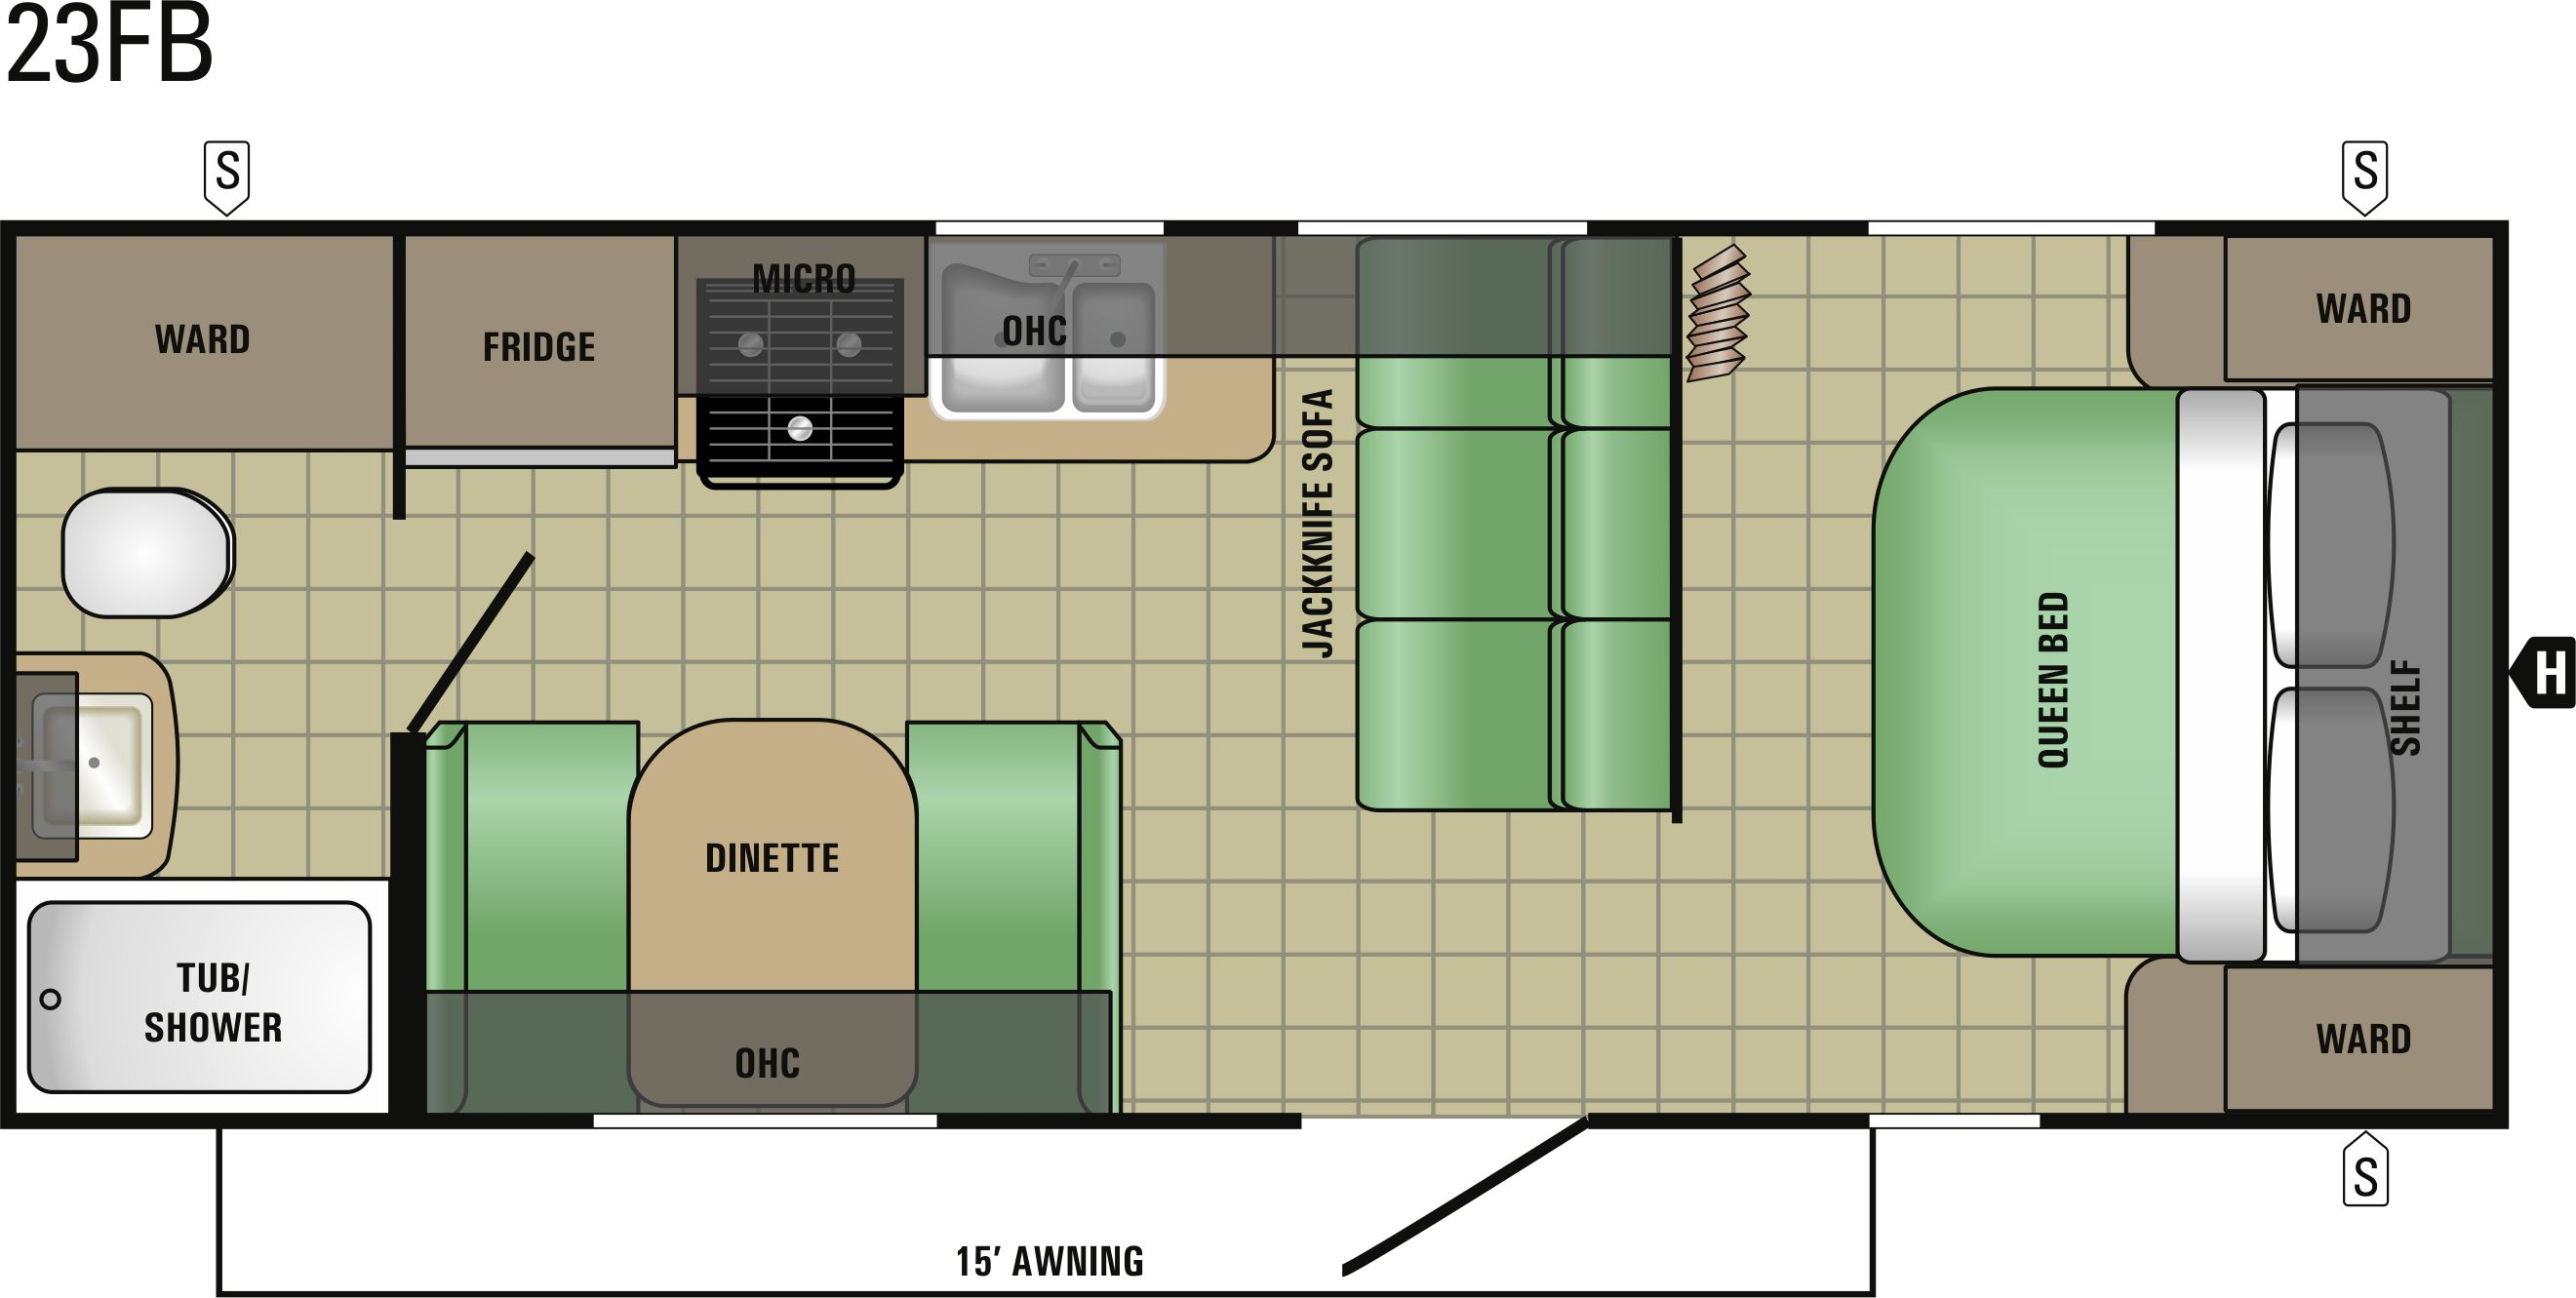 23FB Floorplan